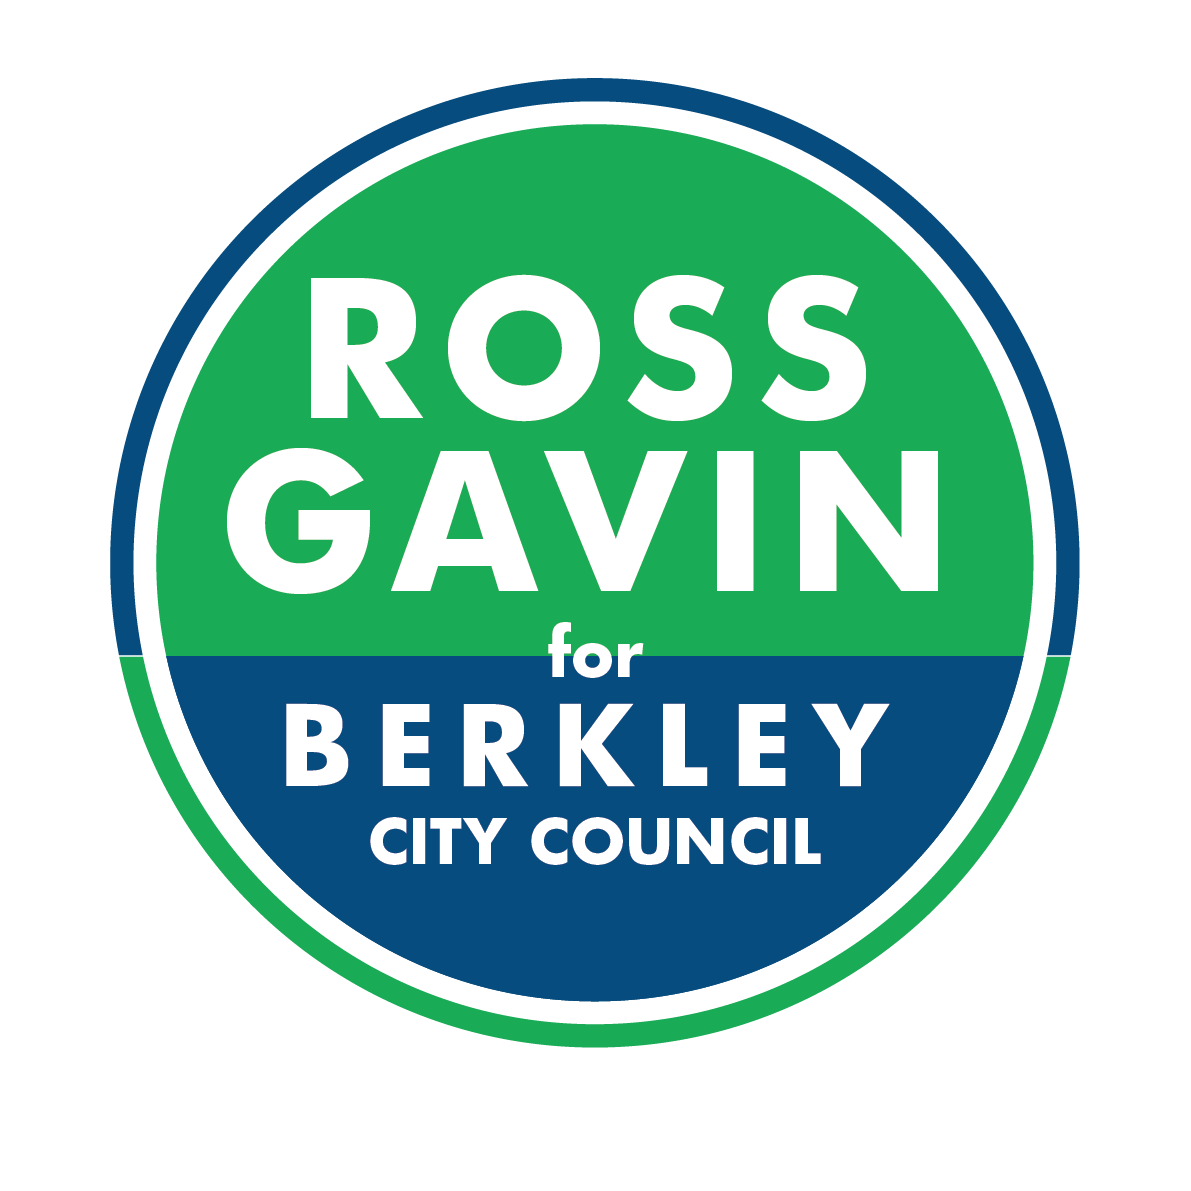 Ross Gavin for Berkley City Council